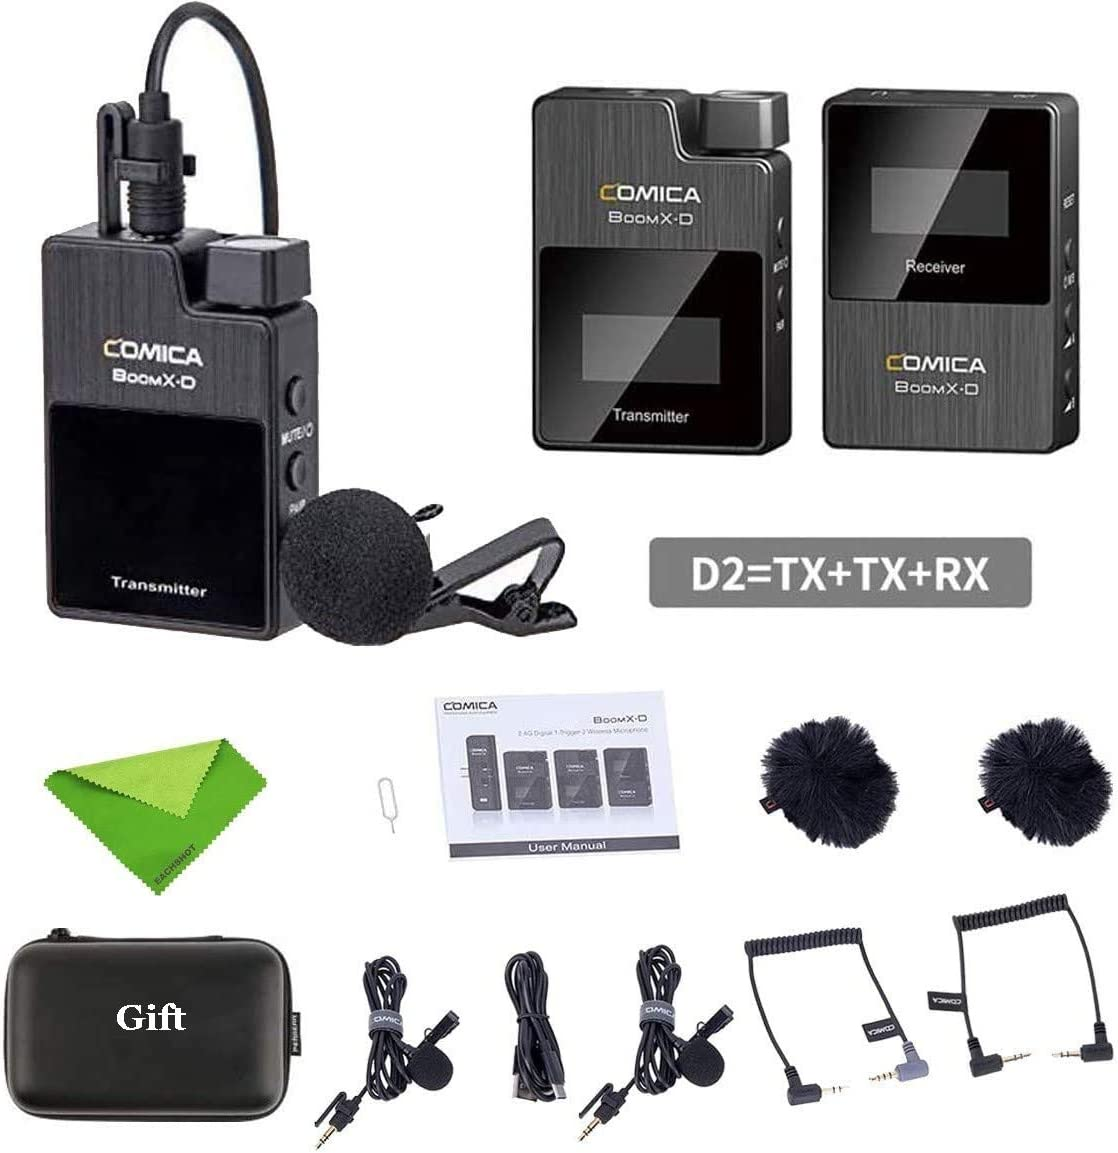 Comica BoomX-D D2 Wireless Lavalier Microphone System,2.4G Digital 1-Trigger-2 Wireless Microphone OLED Display Transmitter /& Receiver with Lapel Clip Mics for DSLR Camera